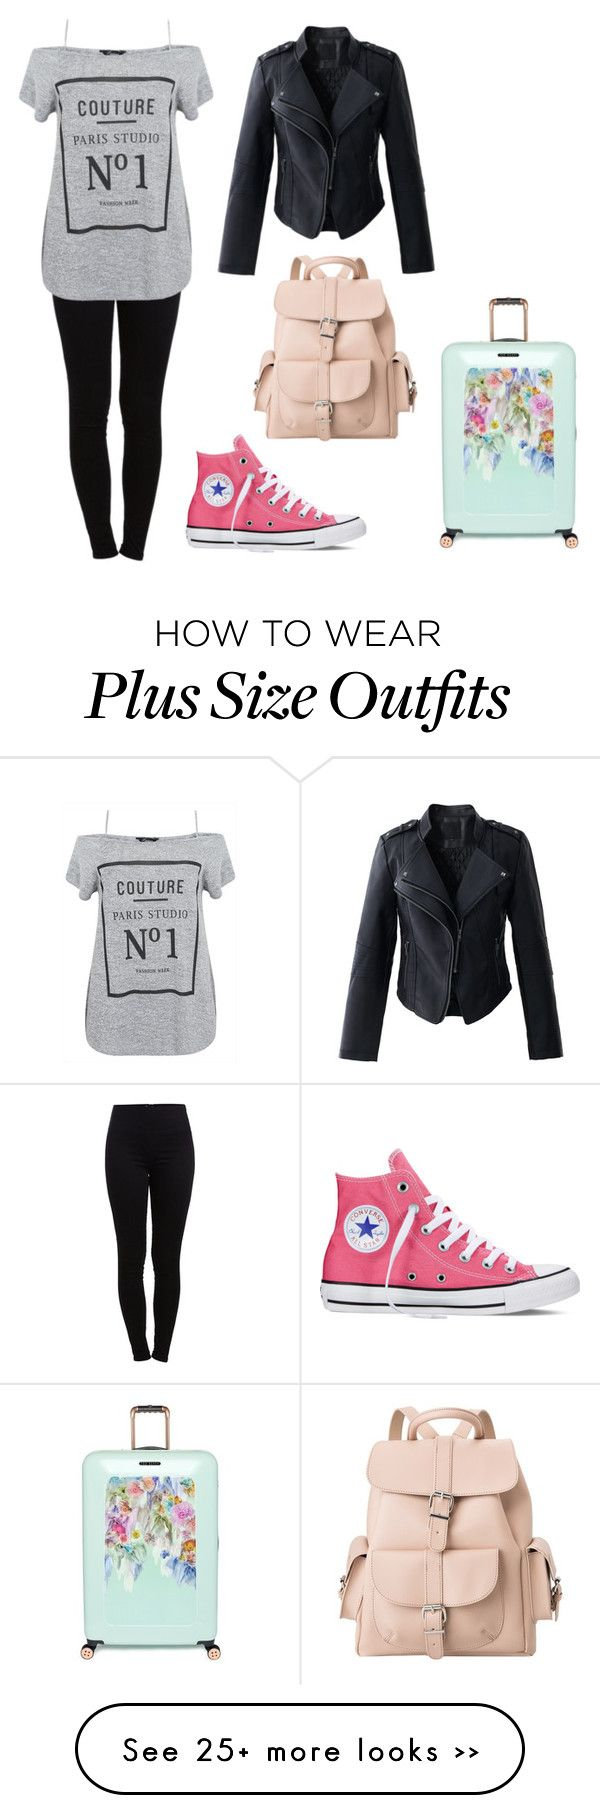 """Untitled #1706"" by aliciabadrick on Polyvore featuring moda, Pieces, Converse, Chicwish, MANGO y Ted Baker"